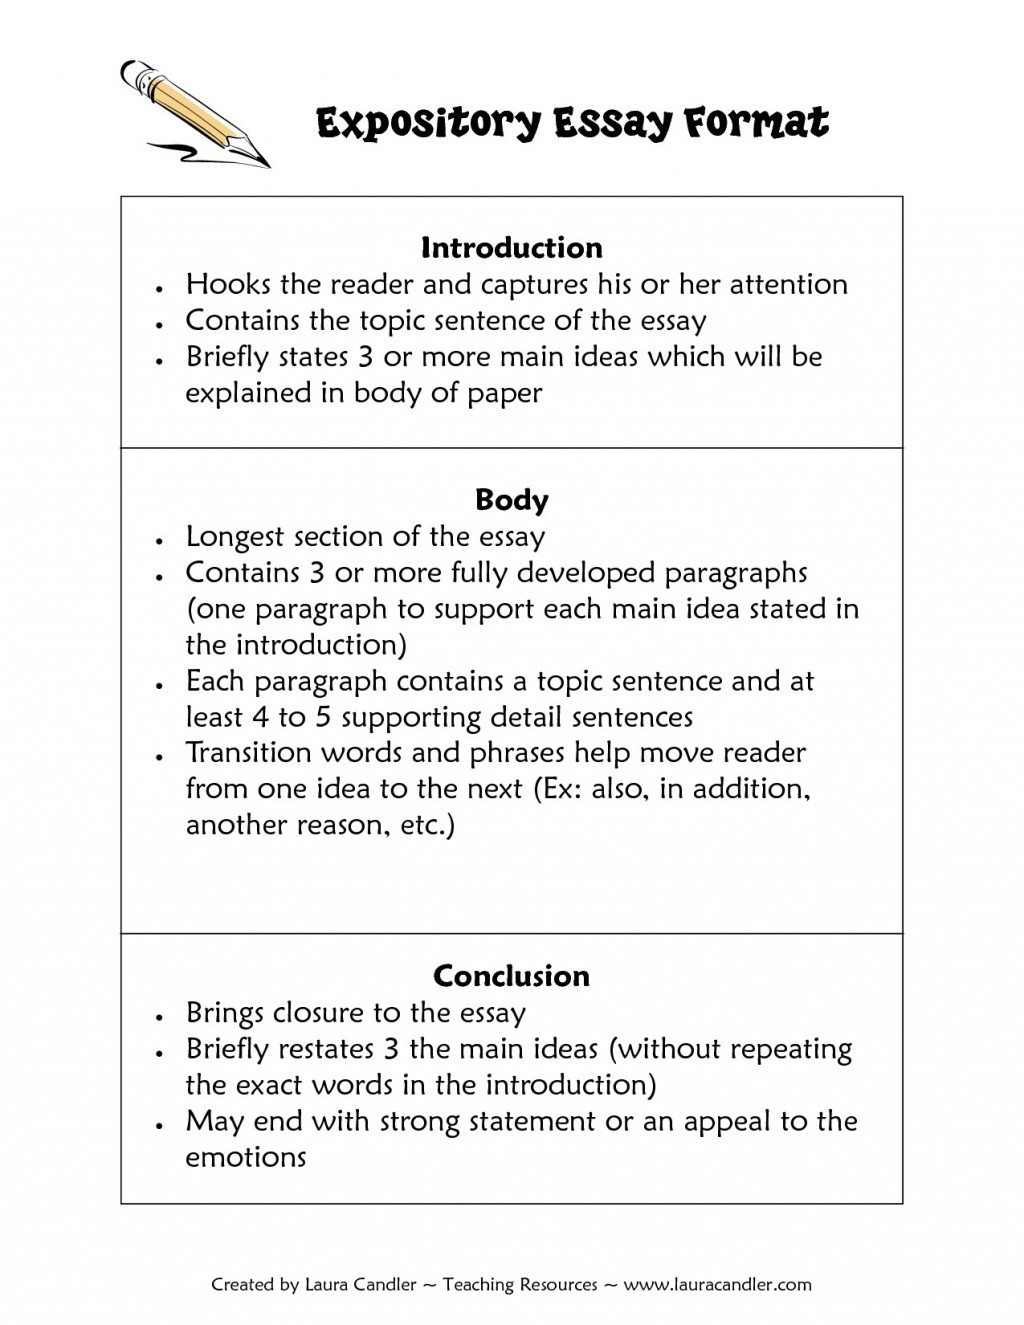 006 Examples Of Introductory Paragraphs For Expository Essays Introduction Paragraph Essay Lynxbus Stunning Just The Facts Topics Rubric 4th Grade Large